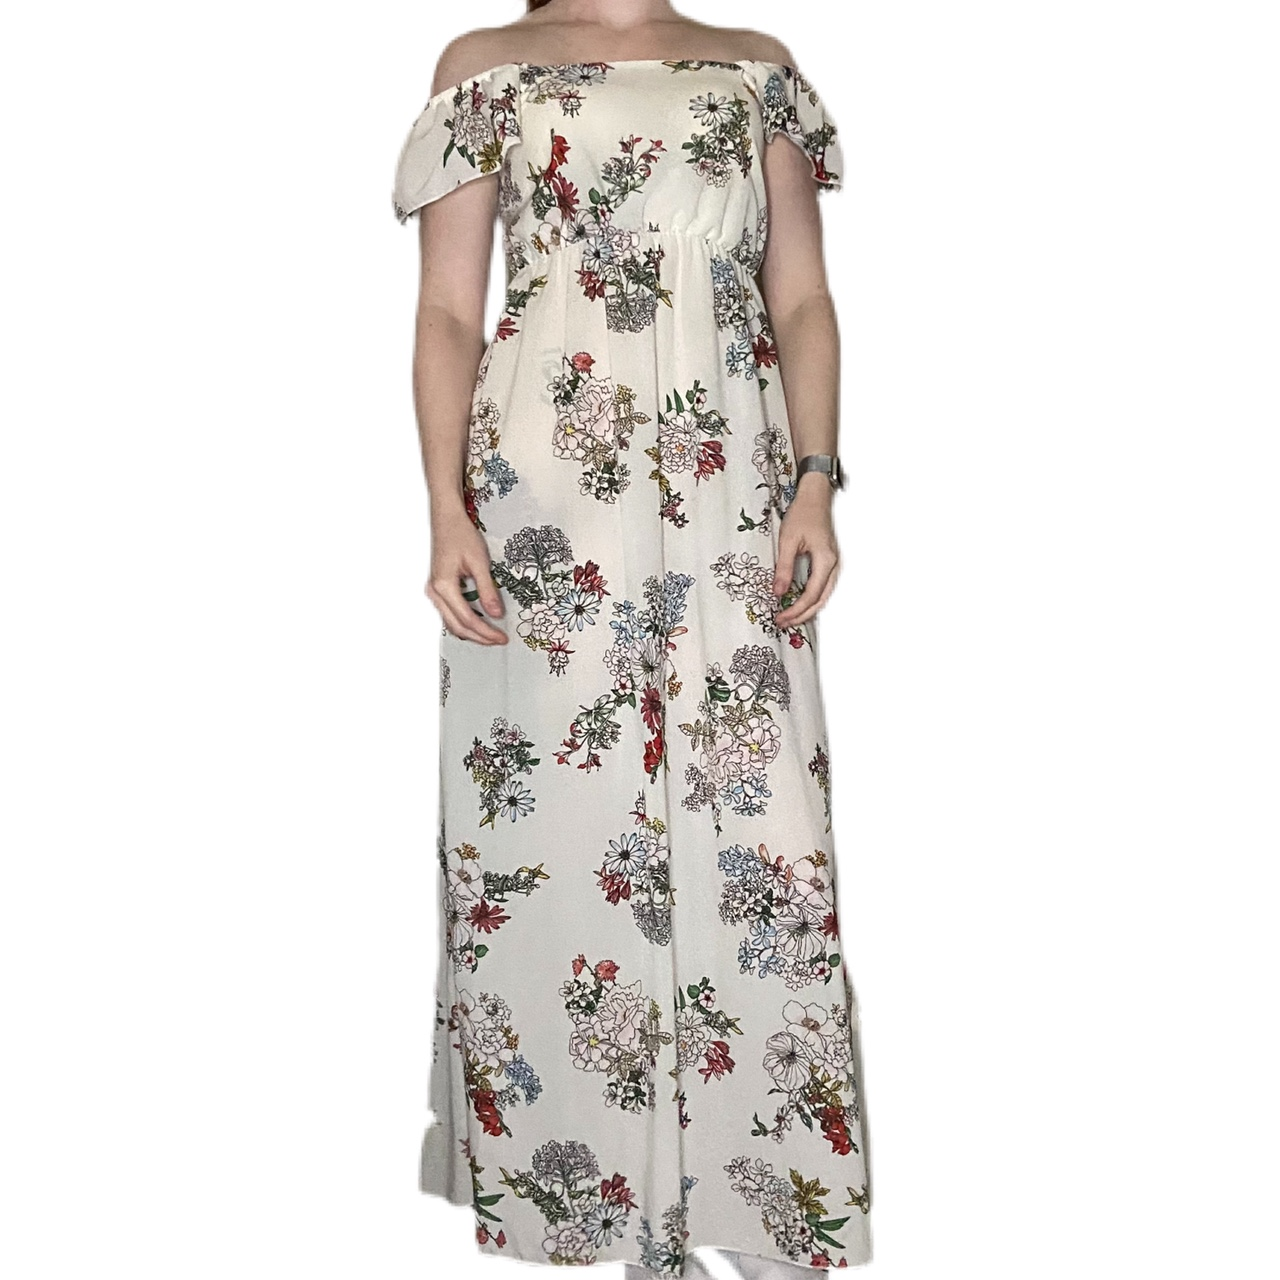 Product Image 1 - Floral All Over Print Summer